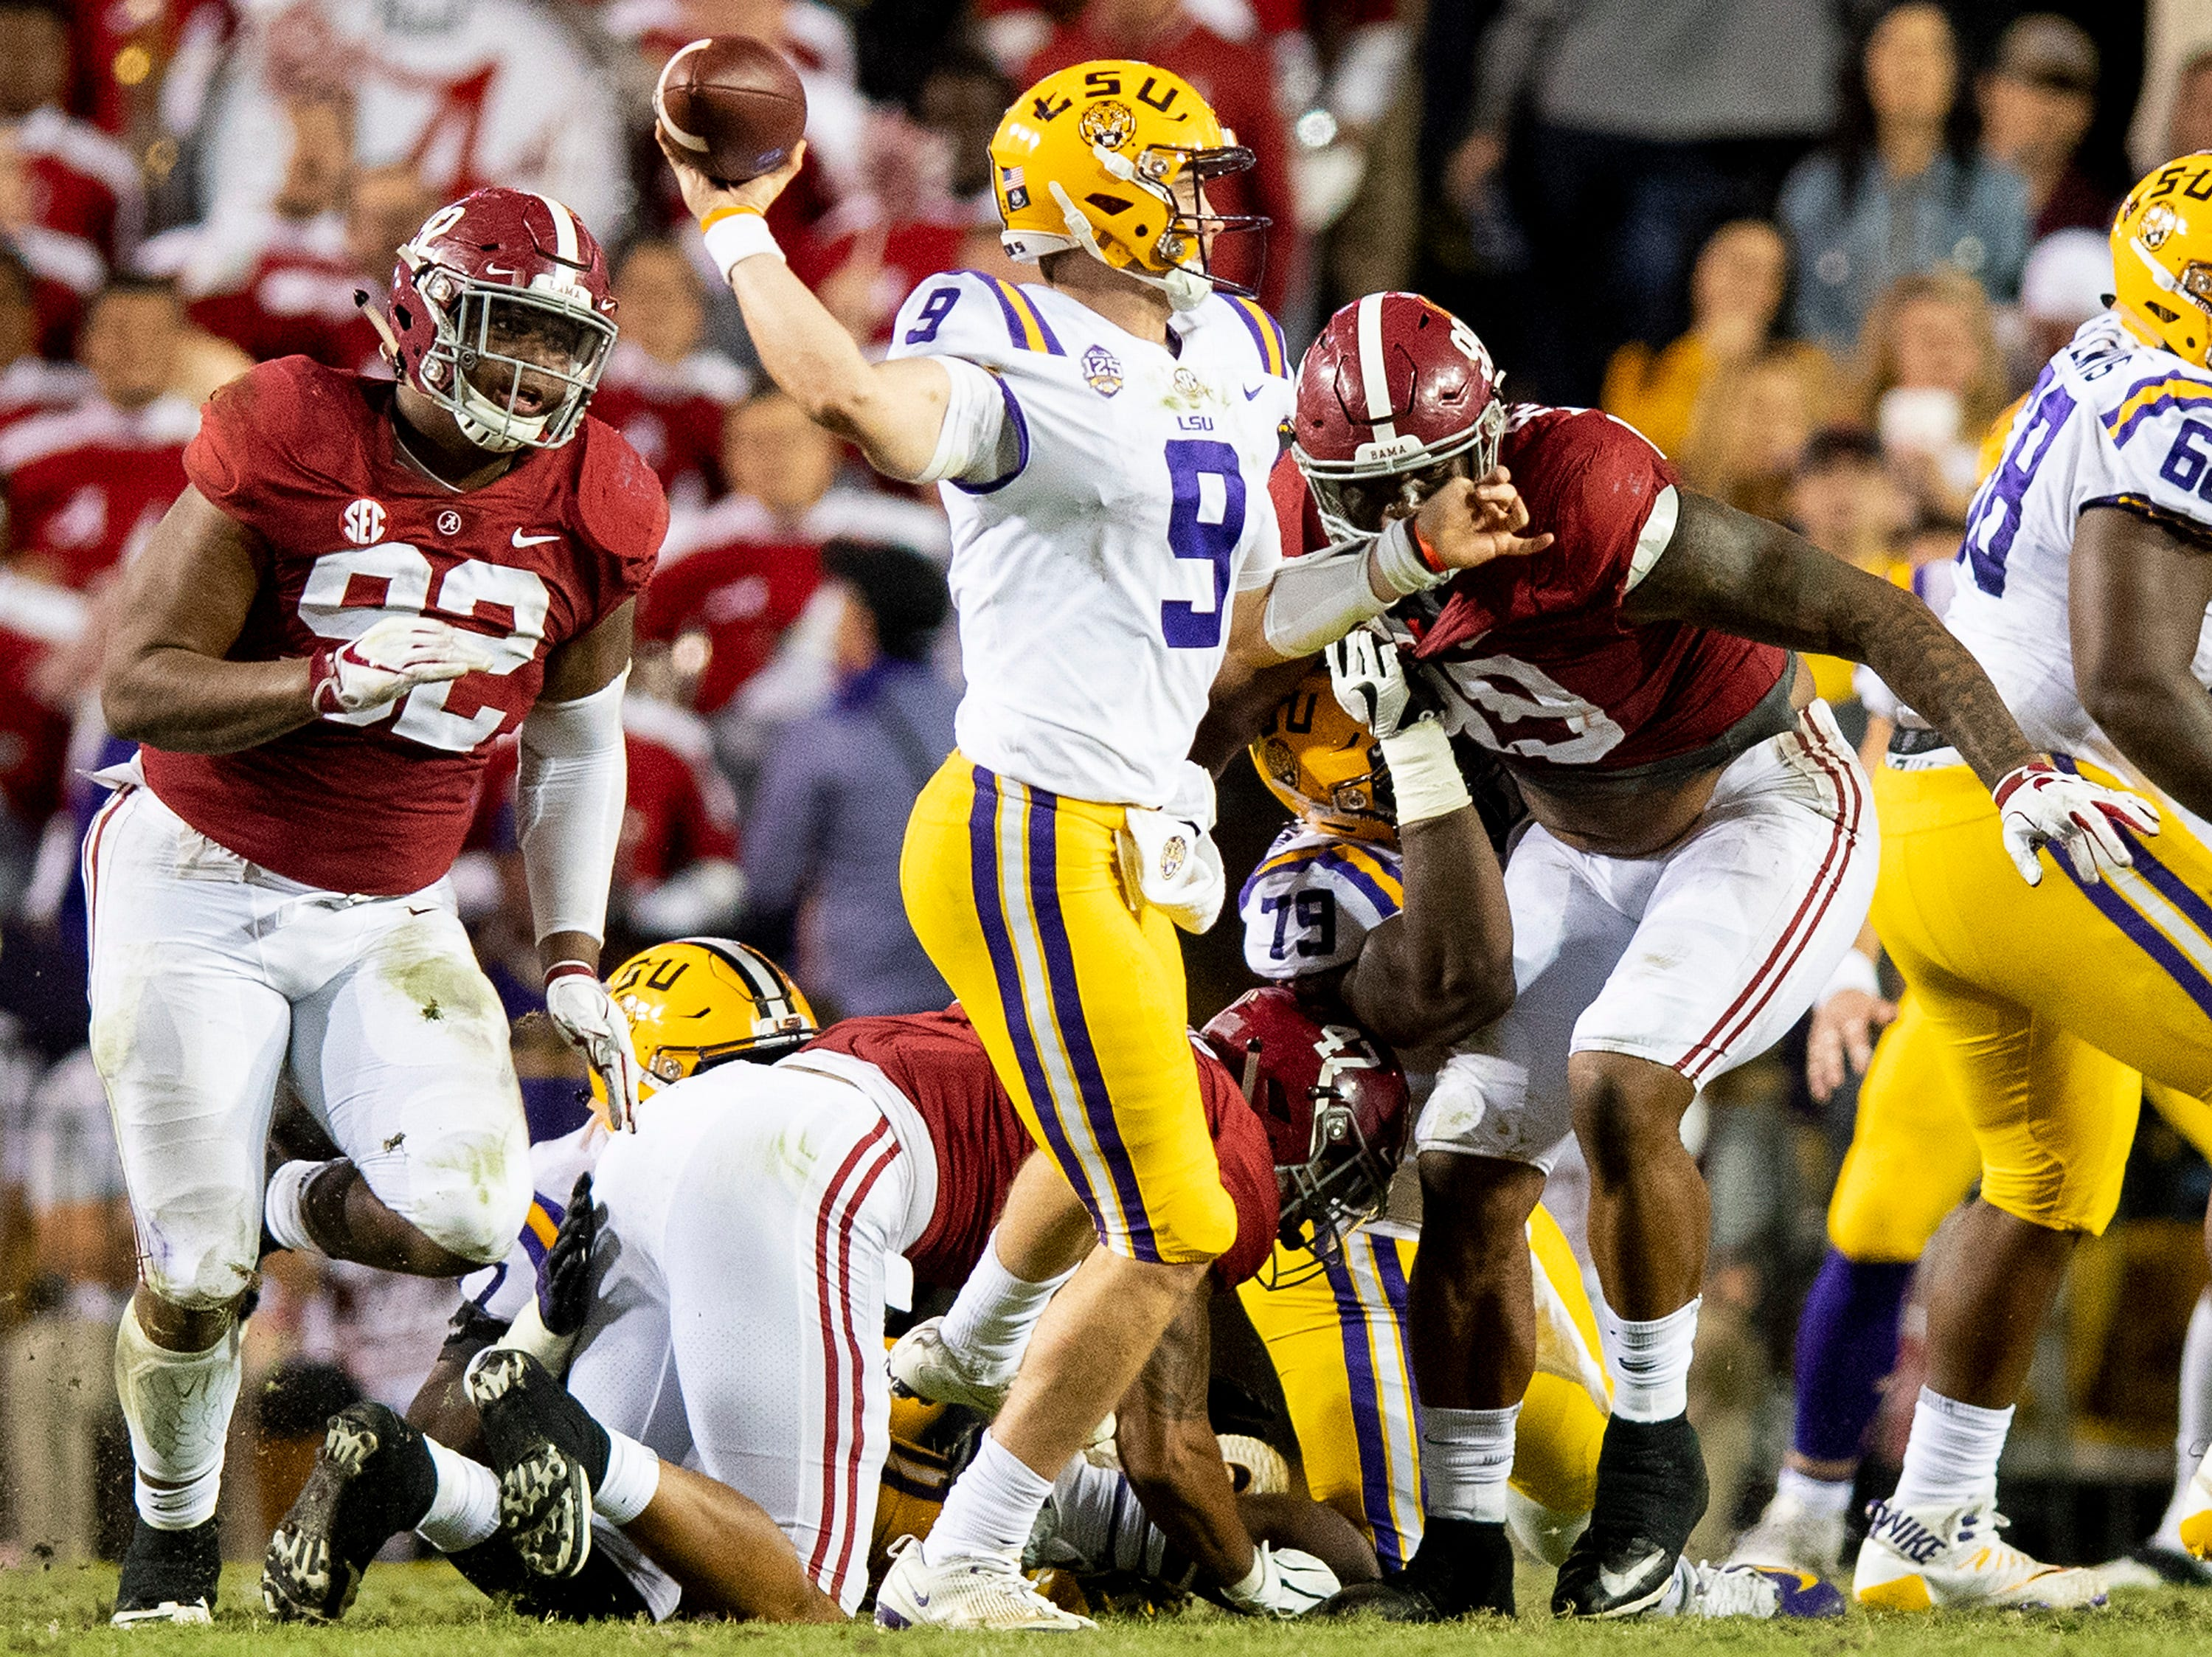 Alabama defensive linemen Quinnen Williams (92) and  Raekwon Davis (99) pressure Louisiana State University quarterback Joe Burrow (9) in second half action at Tiger Stadium in Baton Rouge, La., on Saturday November 3, 2018.